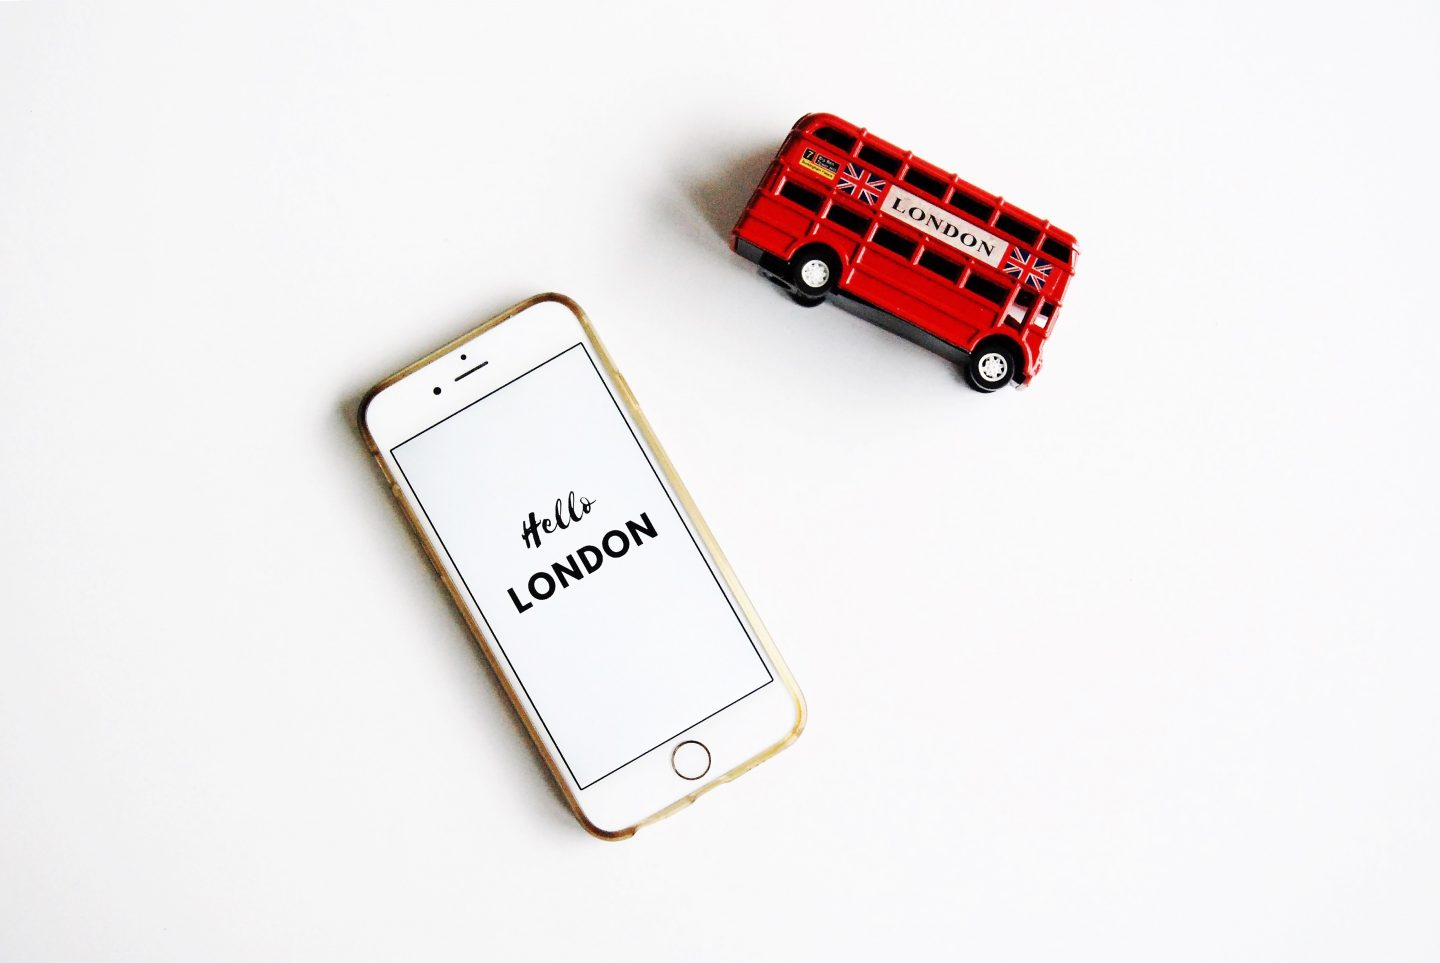 The best 5 apps to download to visit London suggested by a local